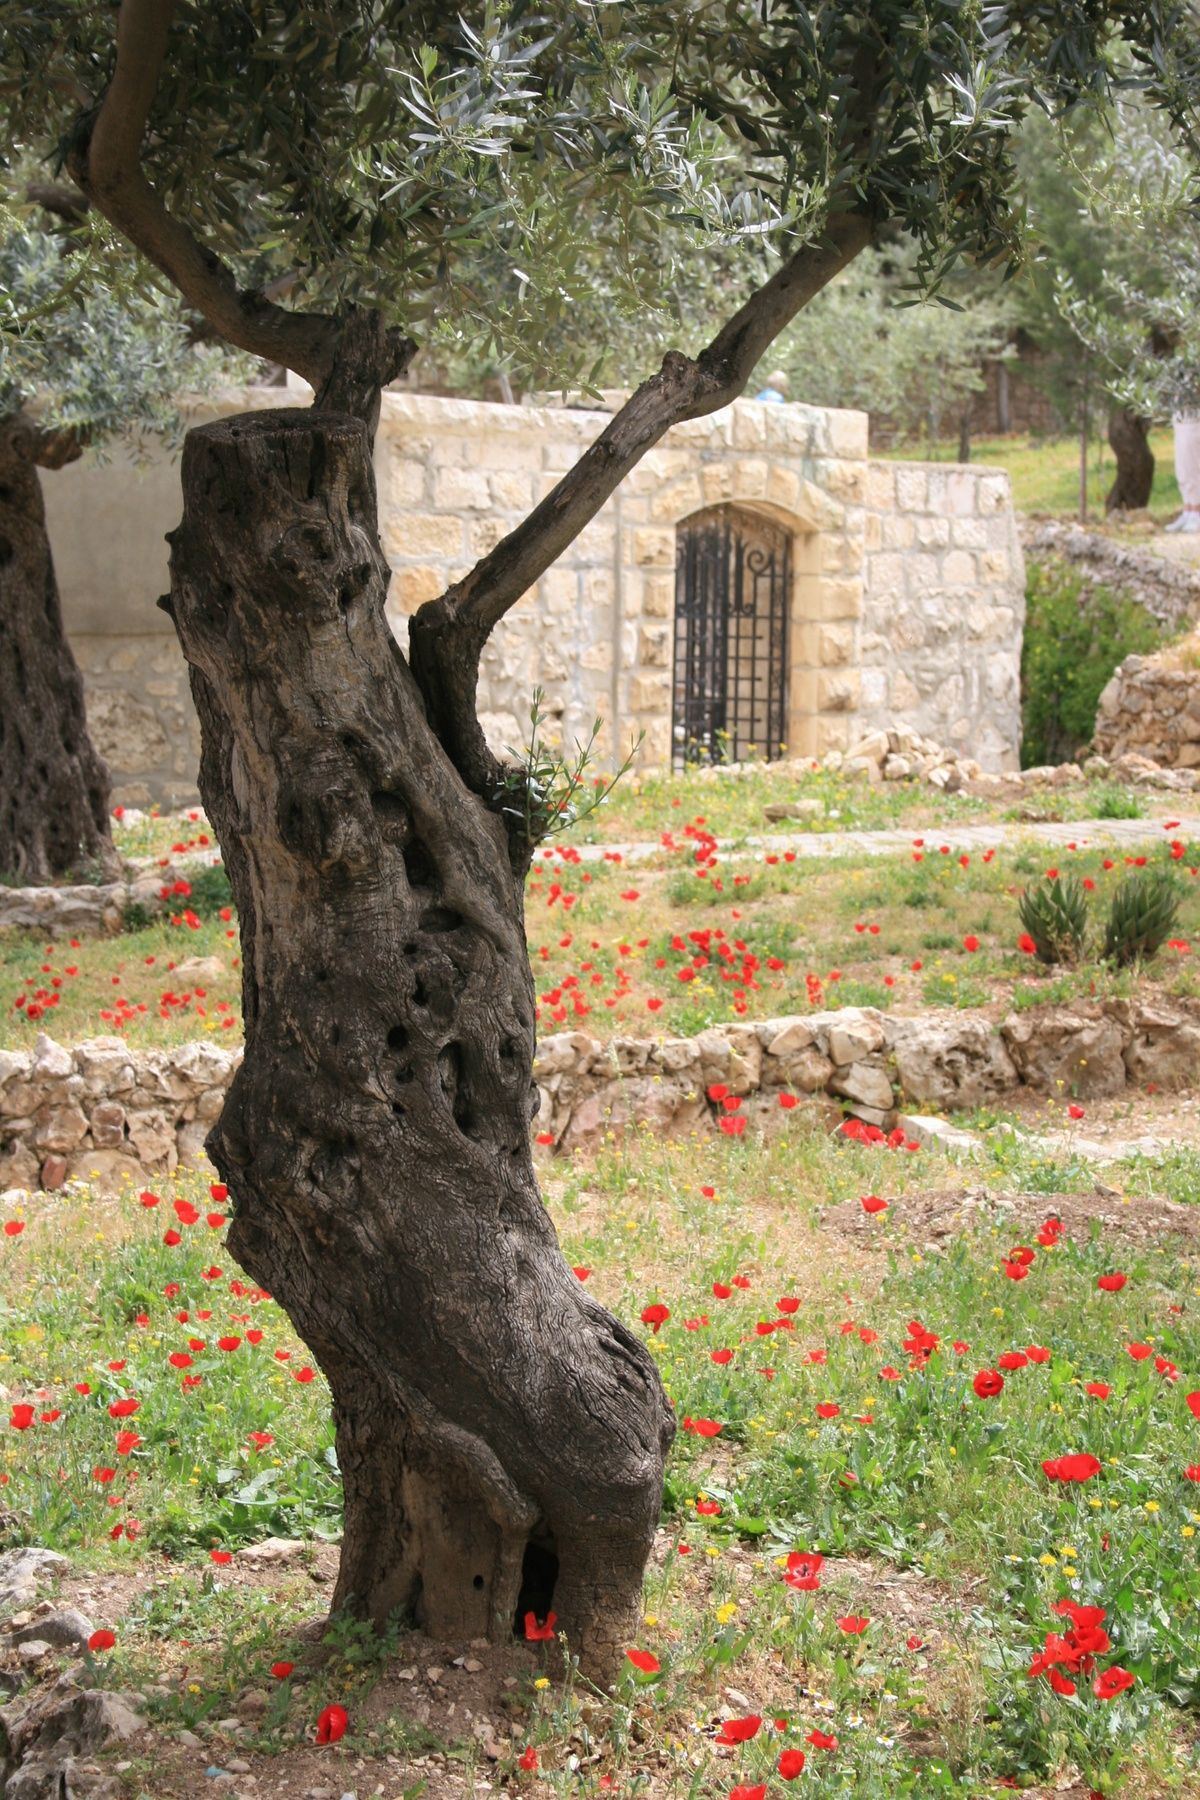 Garden Of Gethsemane Gethsemane Is At The Foot Of The Mount Of Olives In Jerusalem Most Famous